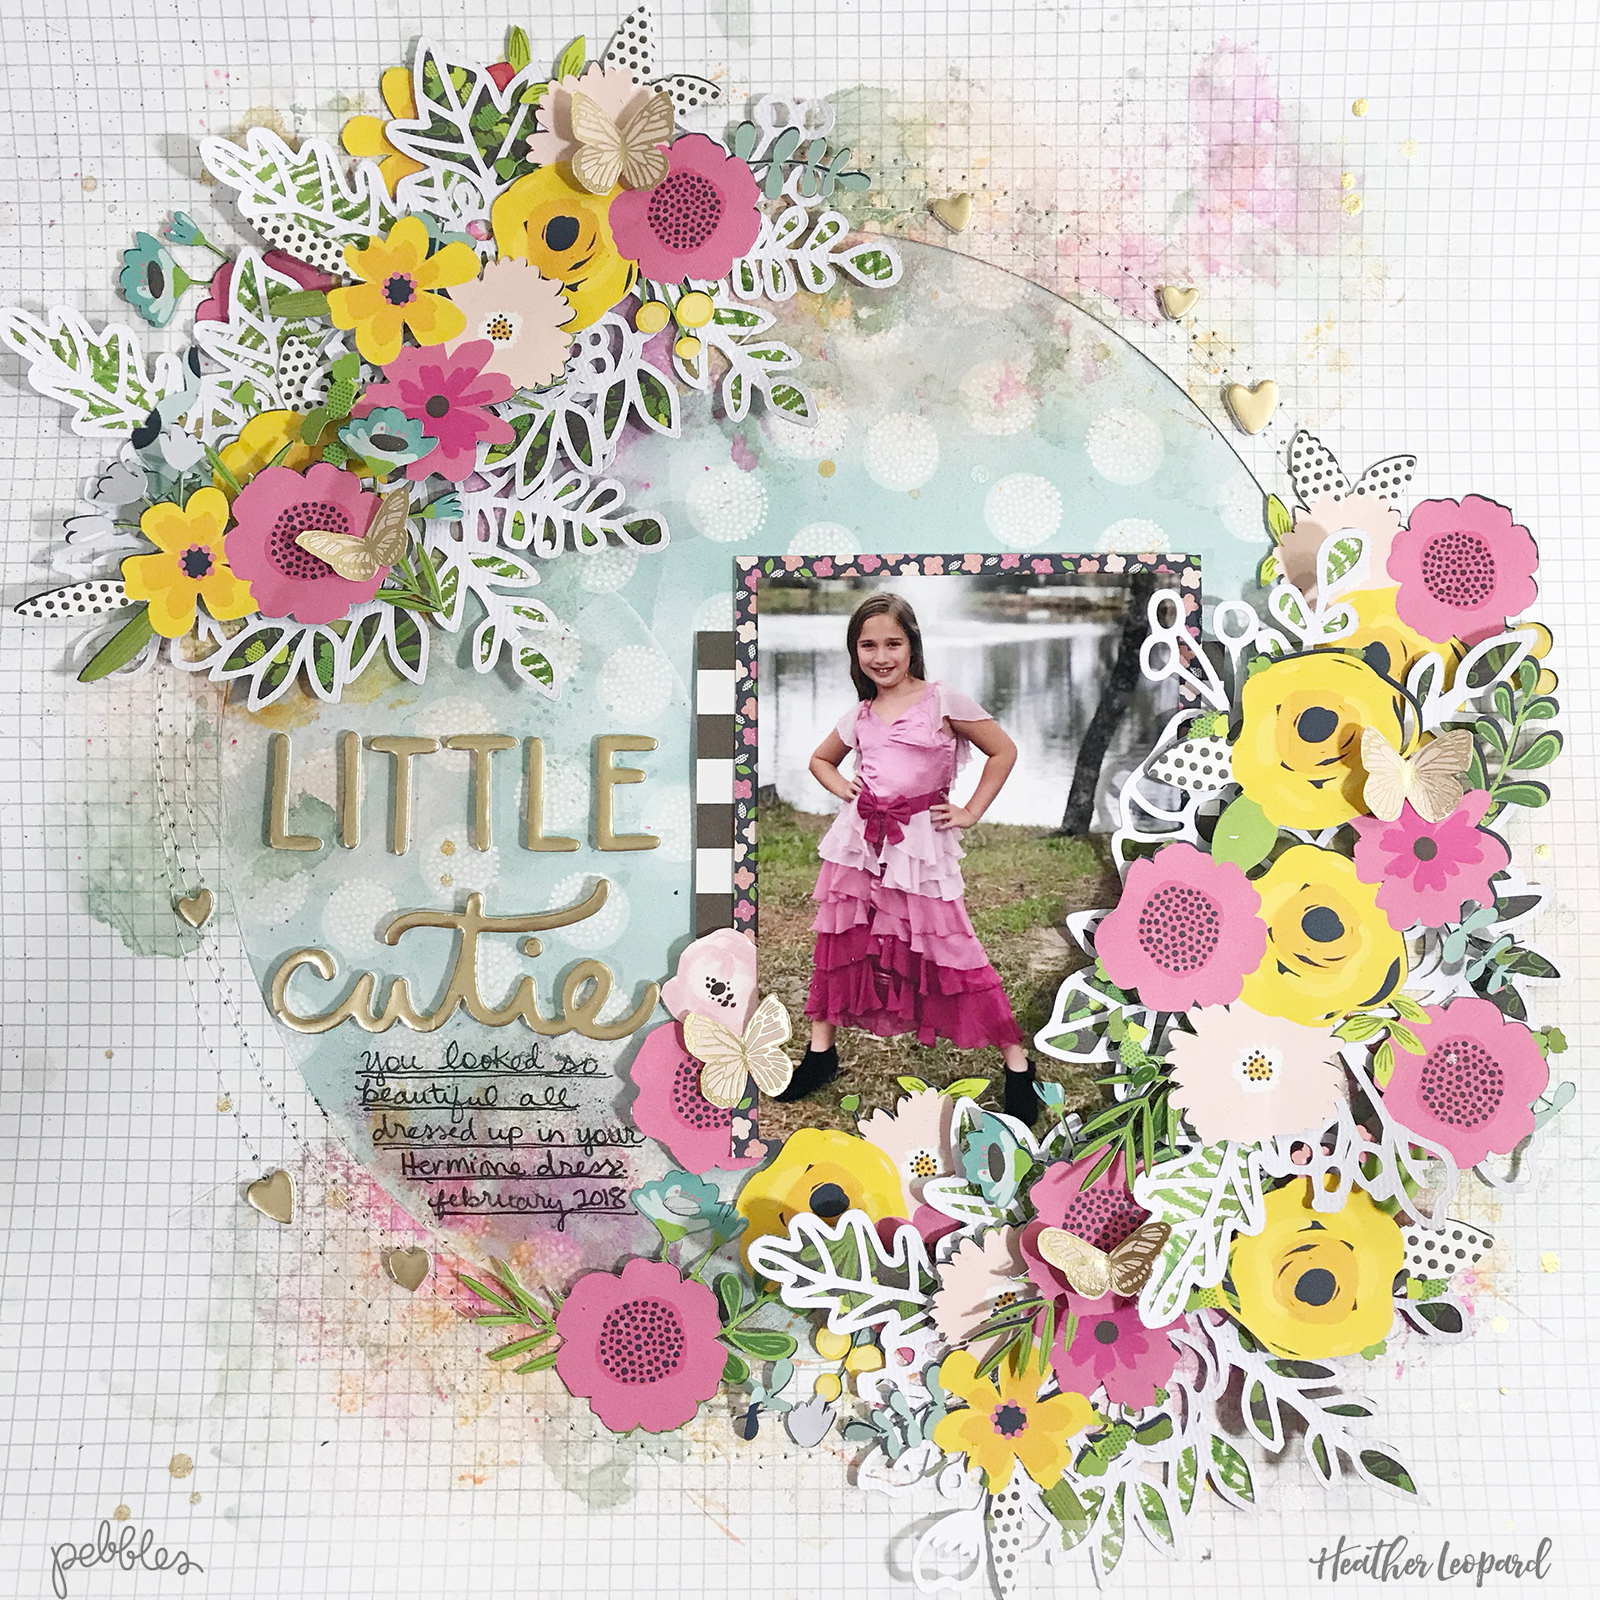 Floral Wreath scrapbooking layout by @heatherleopard using @pebblesinc #patioparty collection #scrapbooking #madewithpebbles #scrapbook #flowers #mixedmedia